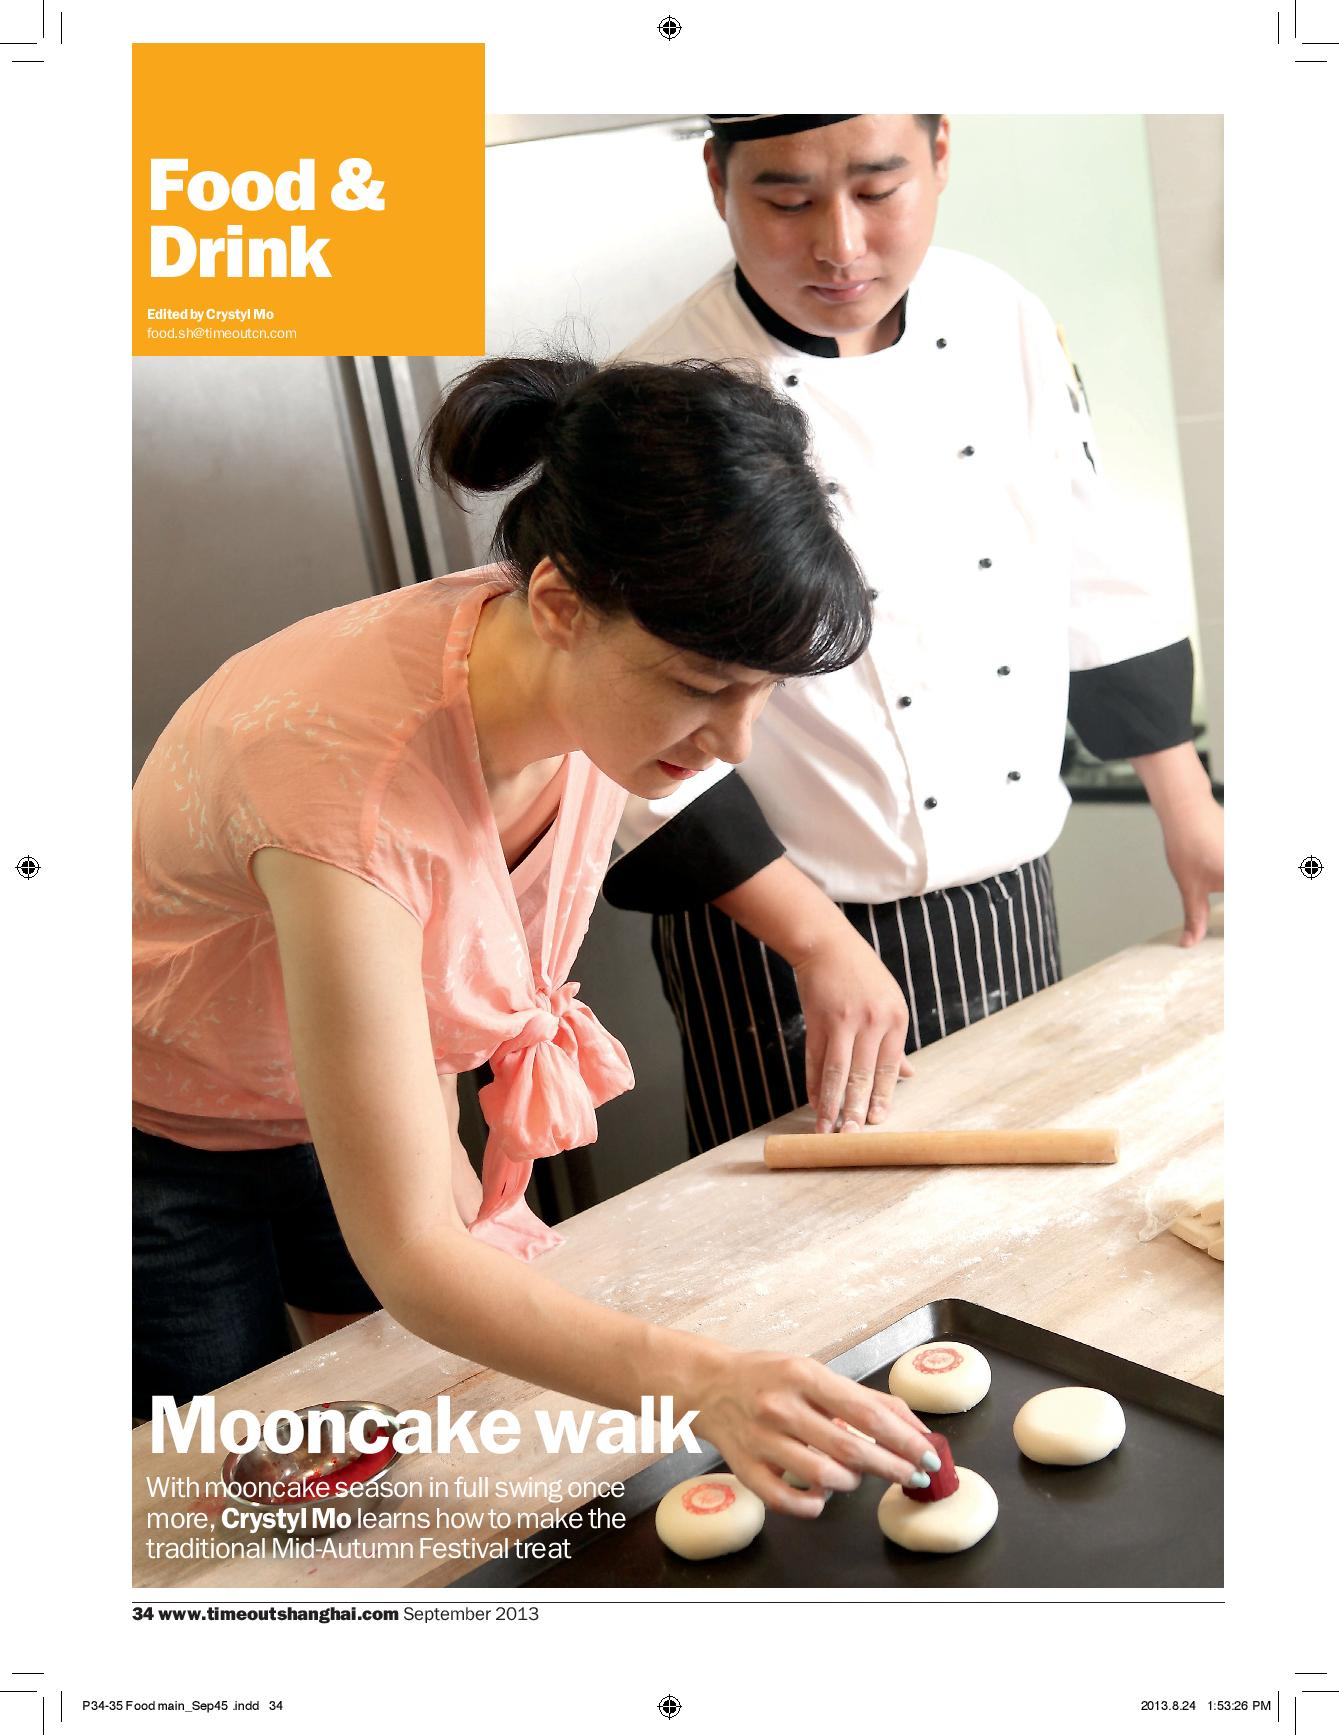 P34-35 Food main_How to make mooncakes Sept 2013-page-001.jpg